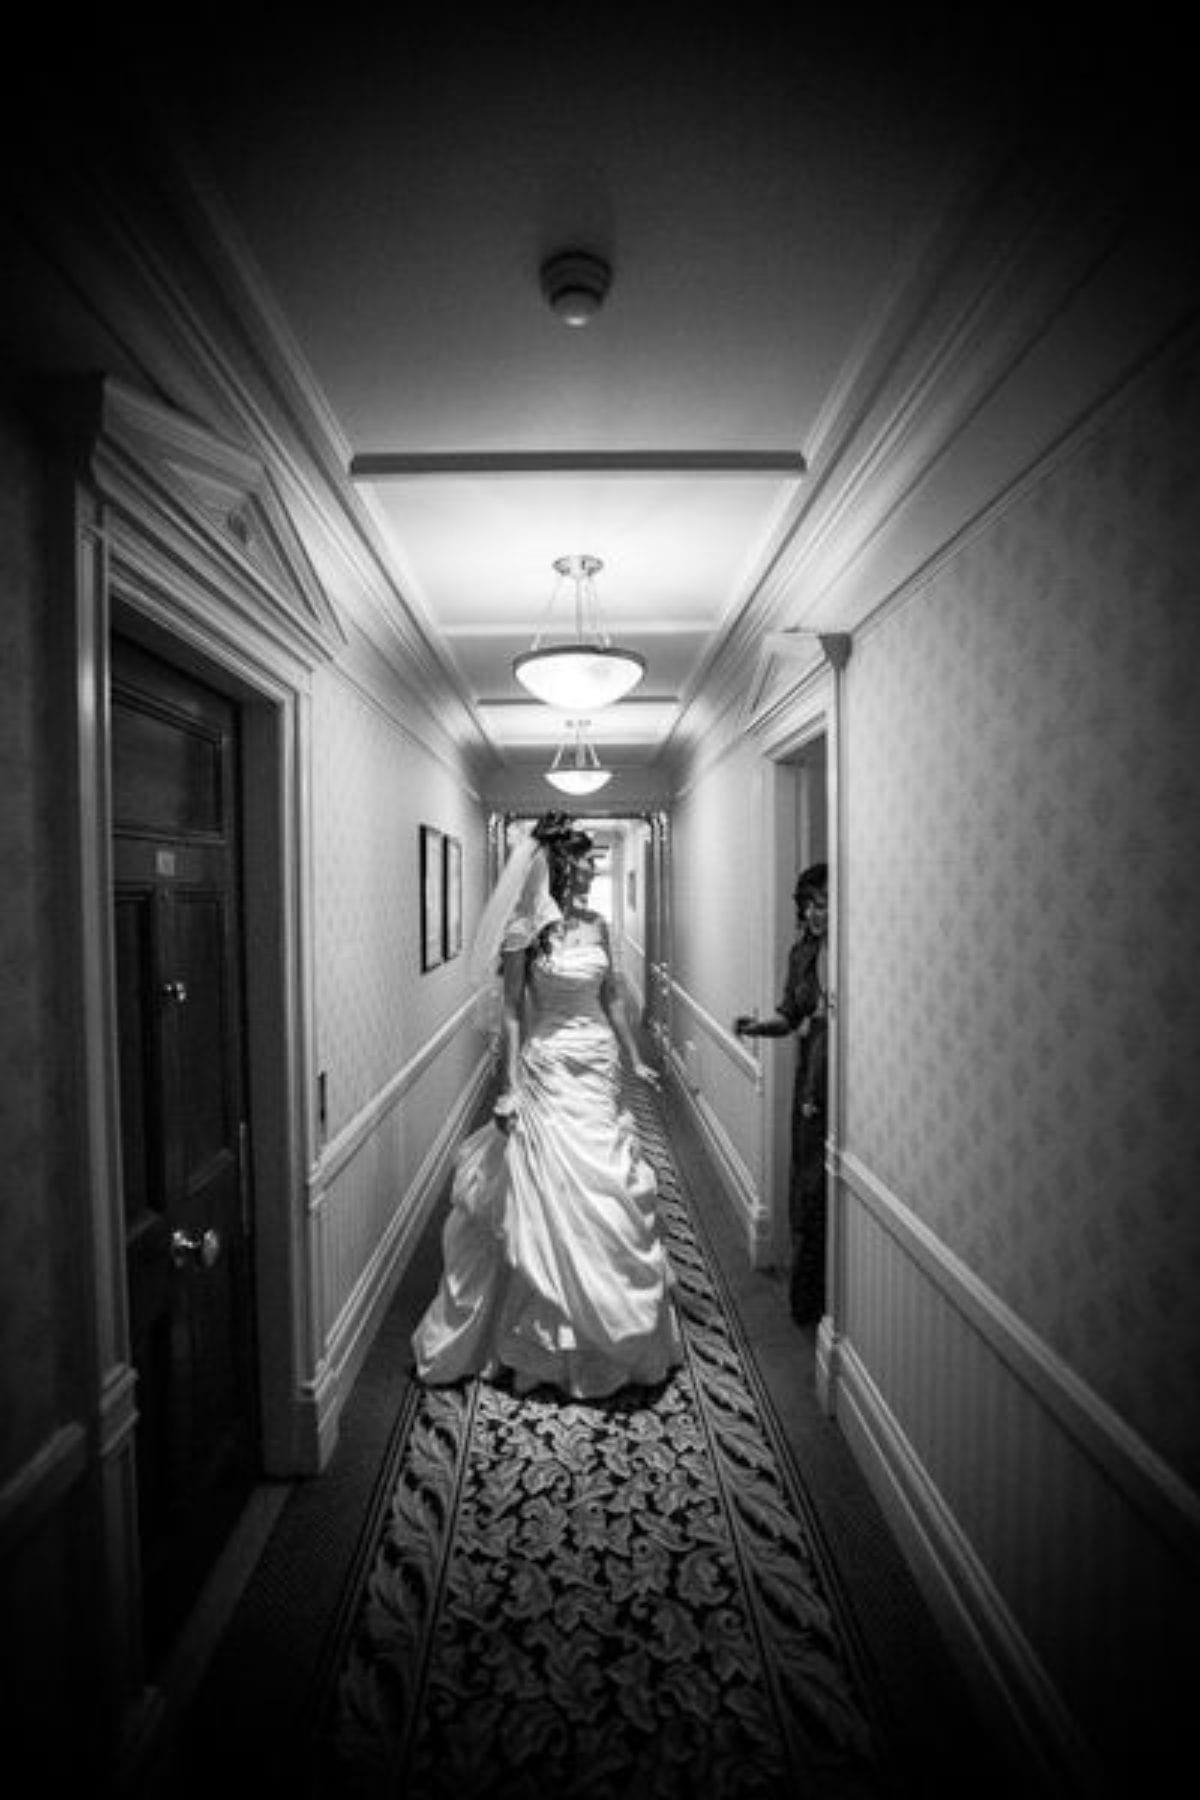 mandarin oriental hotel and the bride